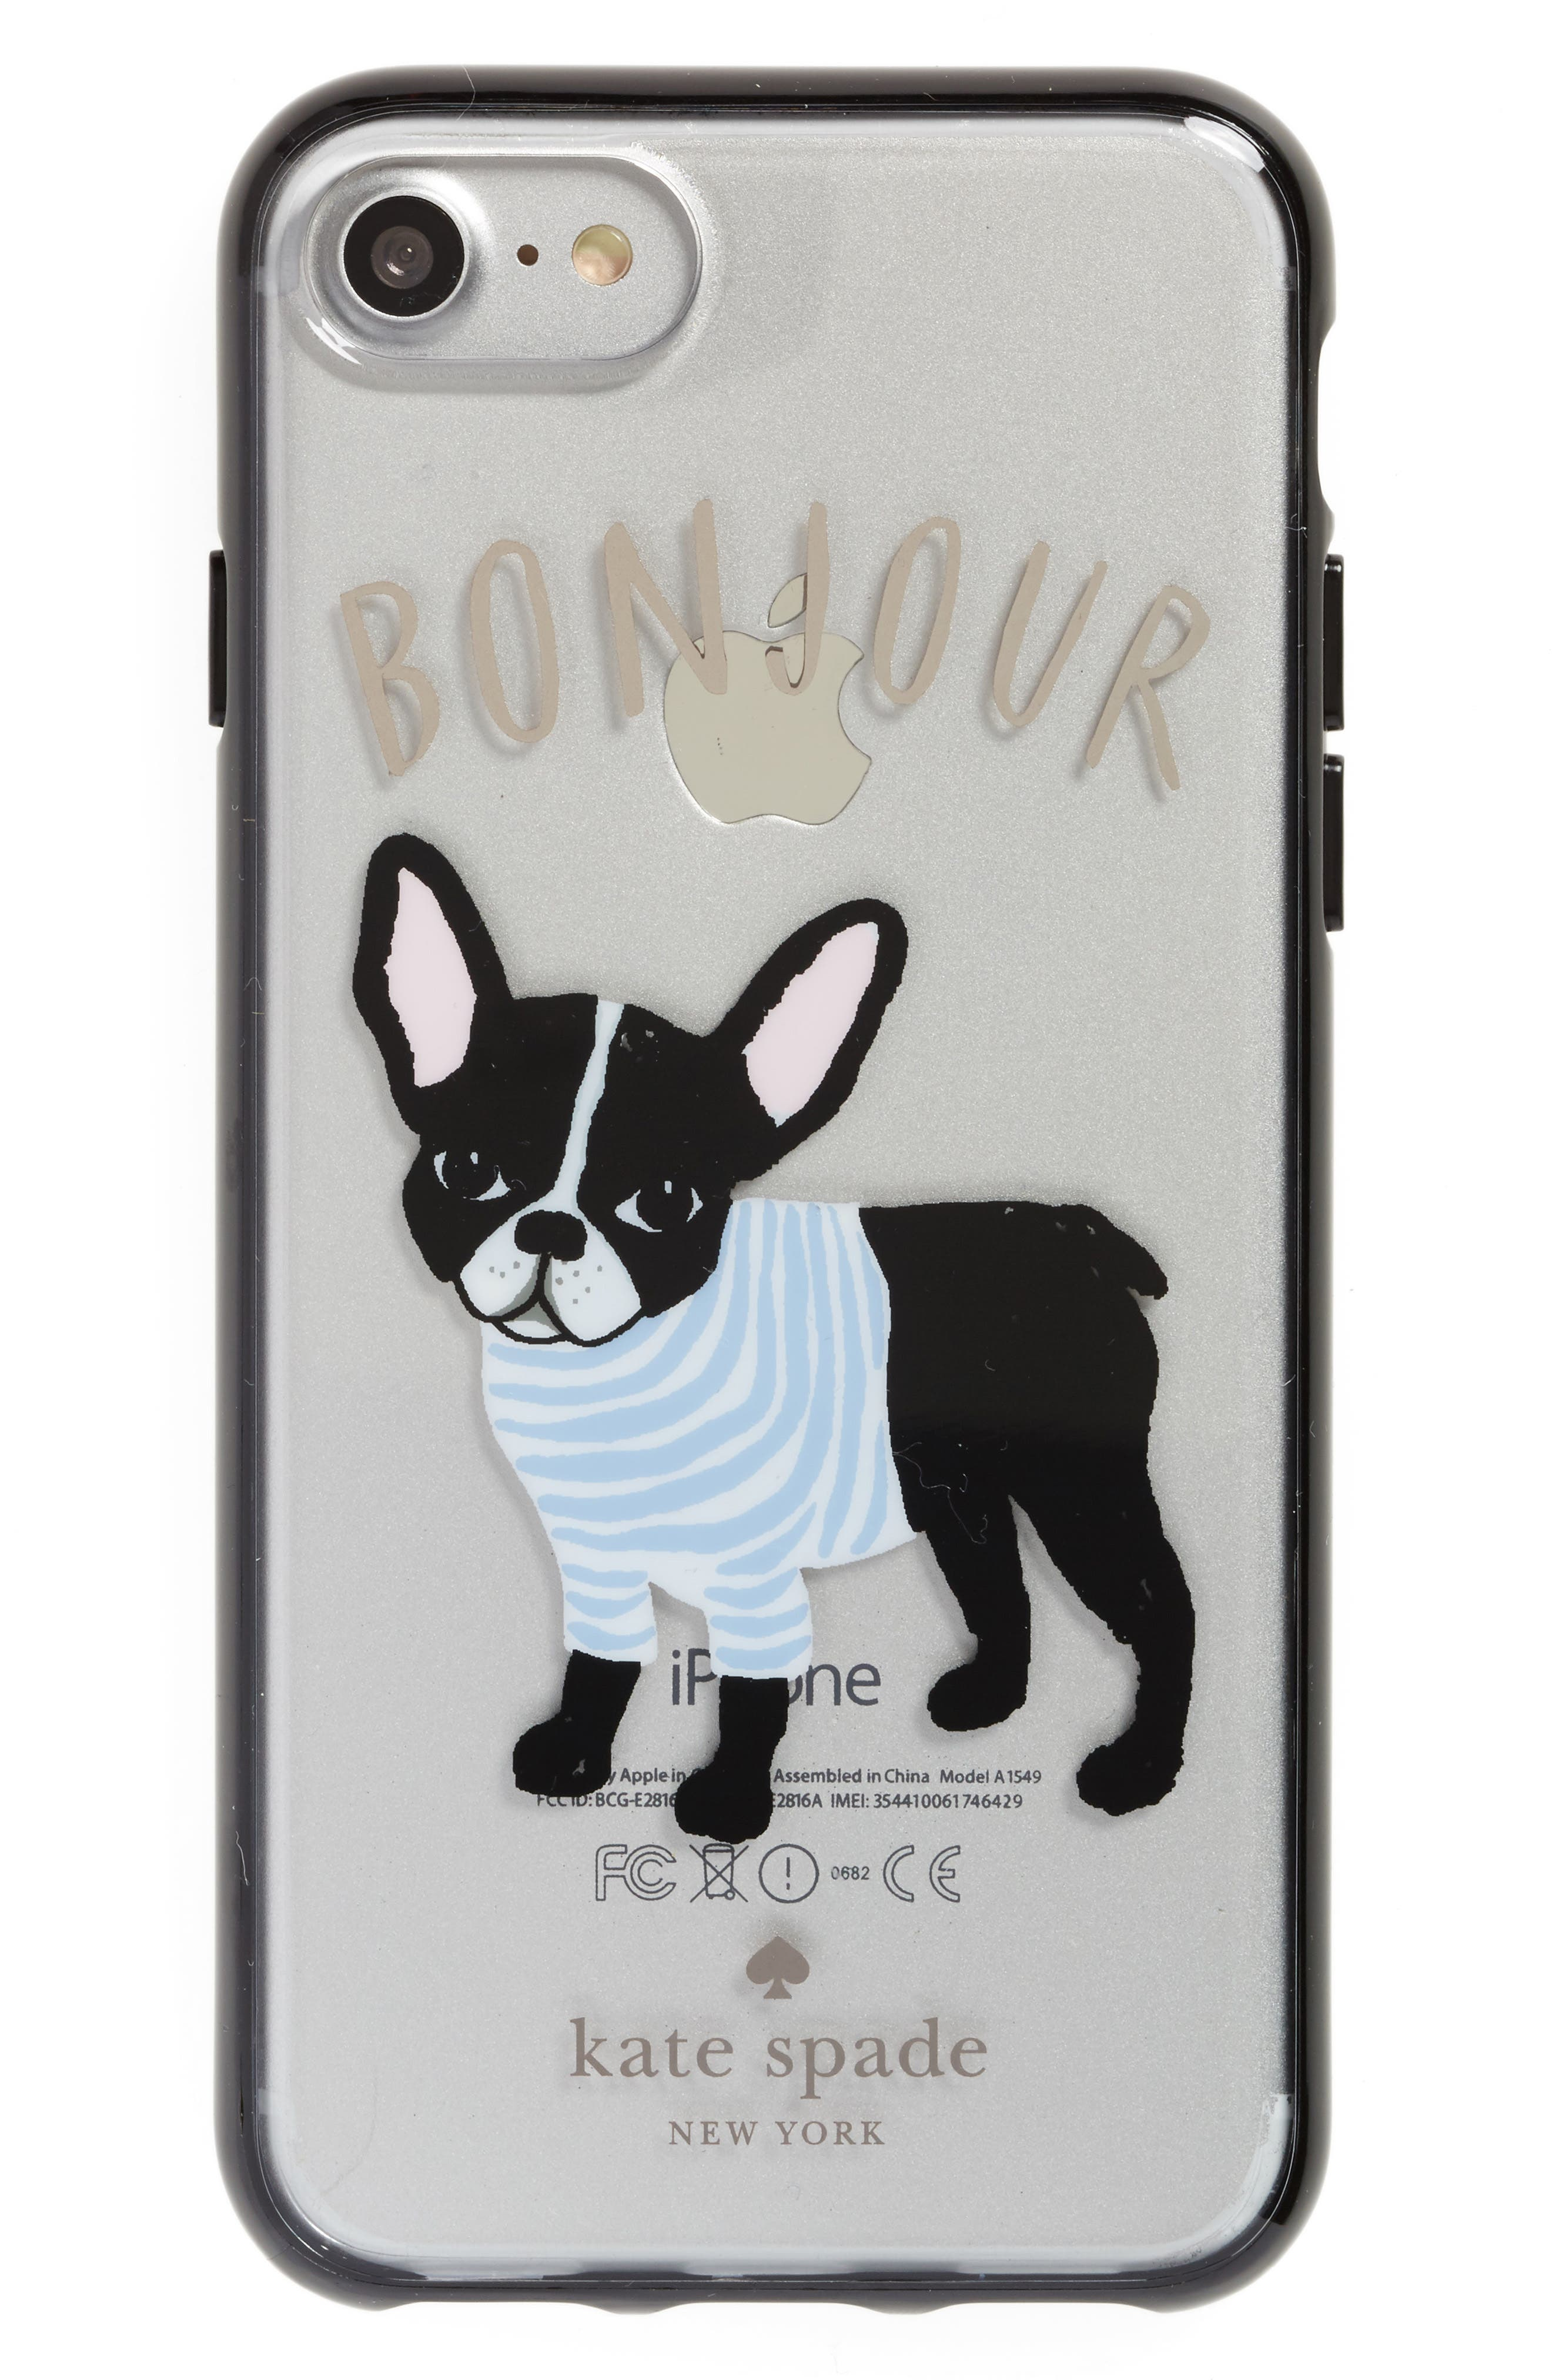 kate spade new york bonjour iPhone 7 & 7 Plus case